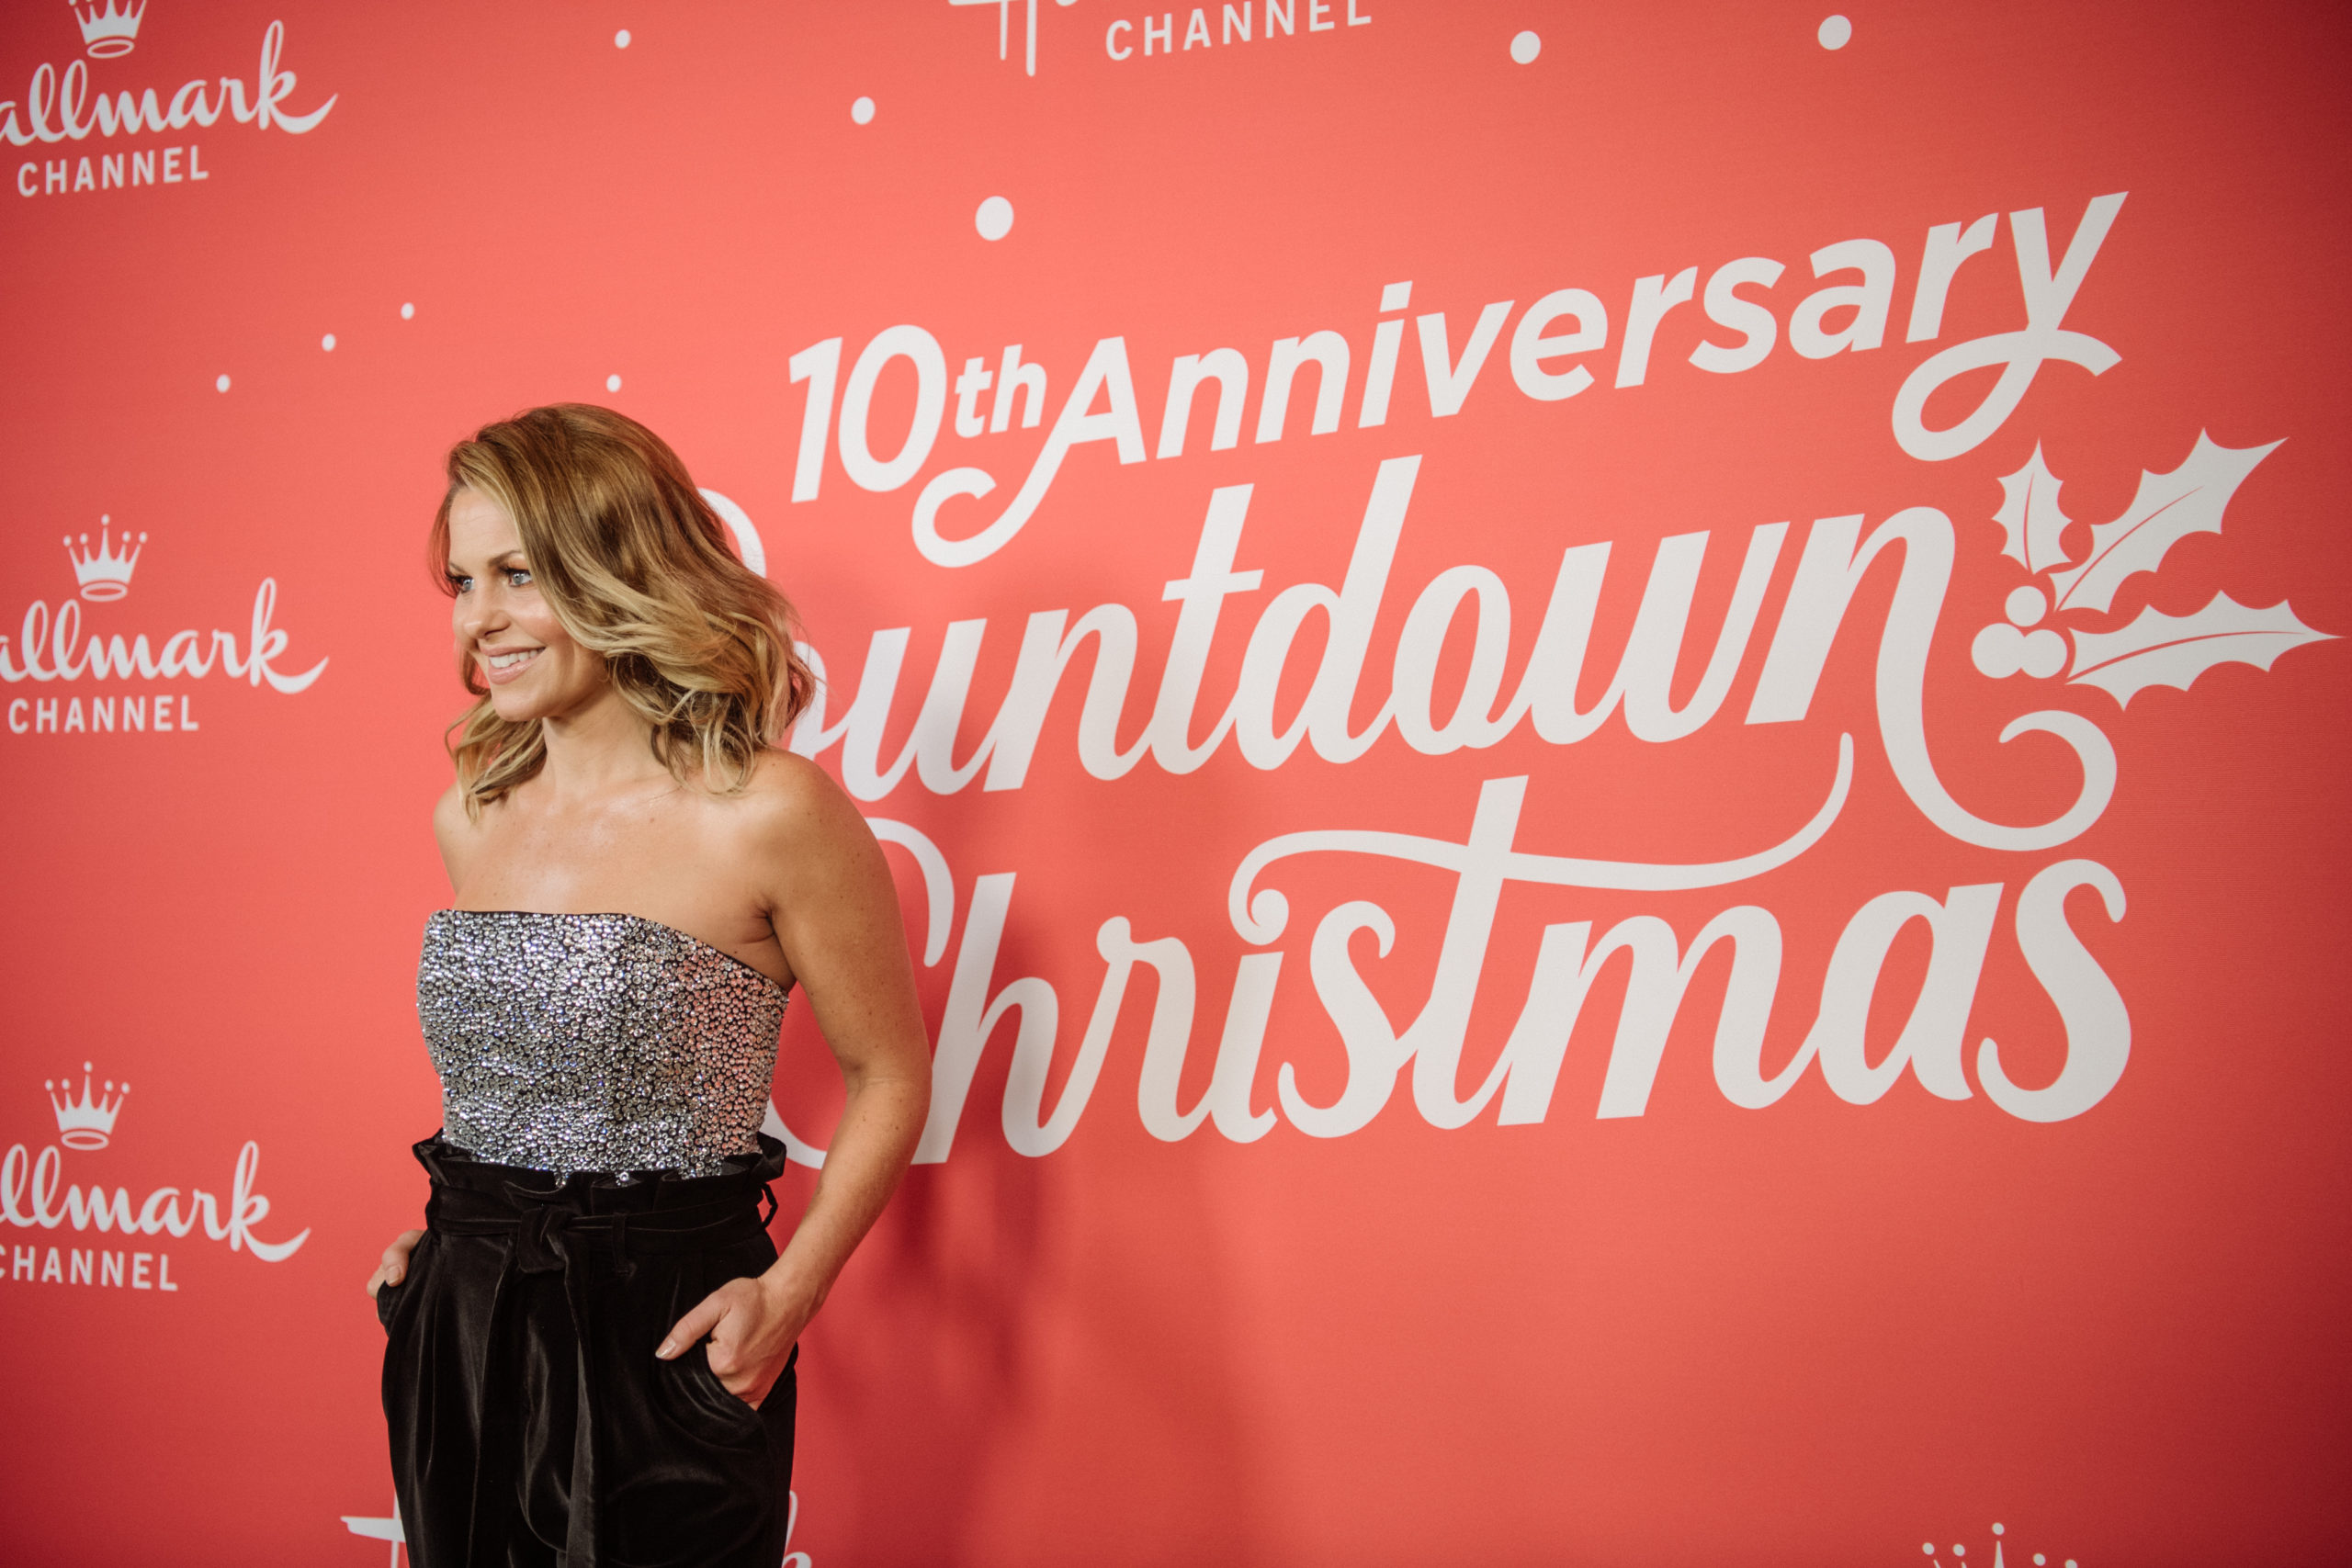 """BEVERLY HILLS, CALIFORNIA - OCTOBER 21: Candace Cameron-Bure arrives at the Los Angeles special screening of Hallmark Channel's """"A Christmas Love Story"""" at Montage Beverly Hills on October 21, 2019 in Beverly Hills, California. (Photo by Morgan Lieberman/Getty Images)"""